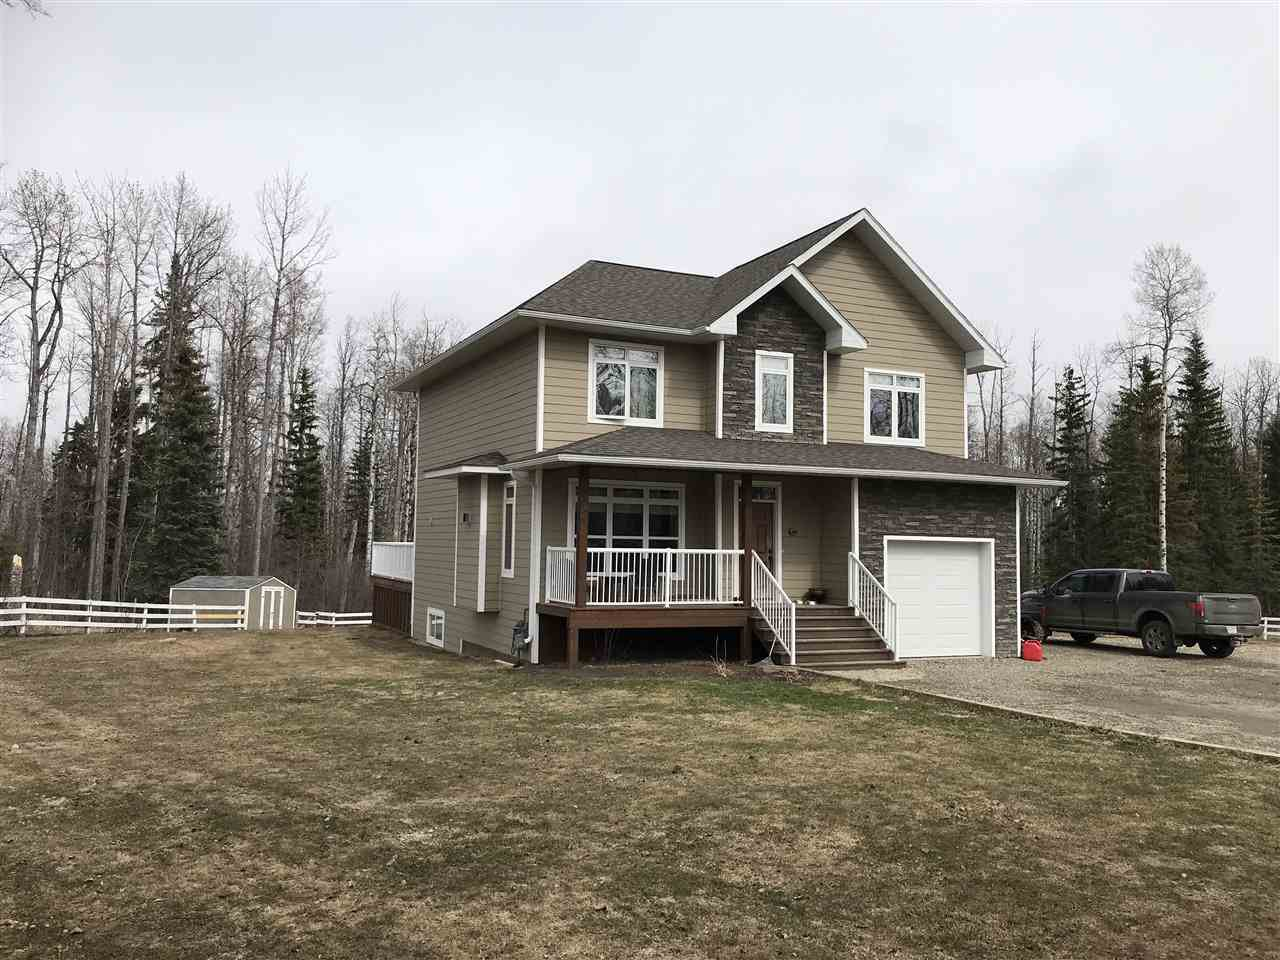 Photo 1: Photos: 13559 281 Road in Charlie Lake: Lakeshore House for sale (Fort St. John (Zone 60))  : MLS®# R2365322